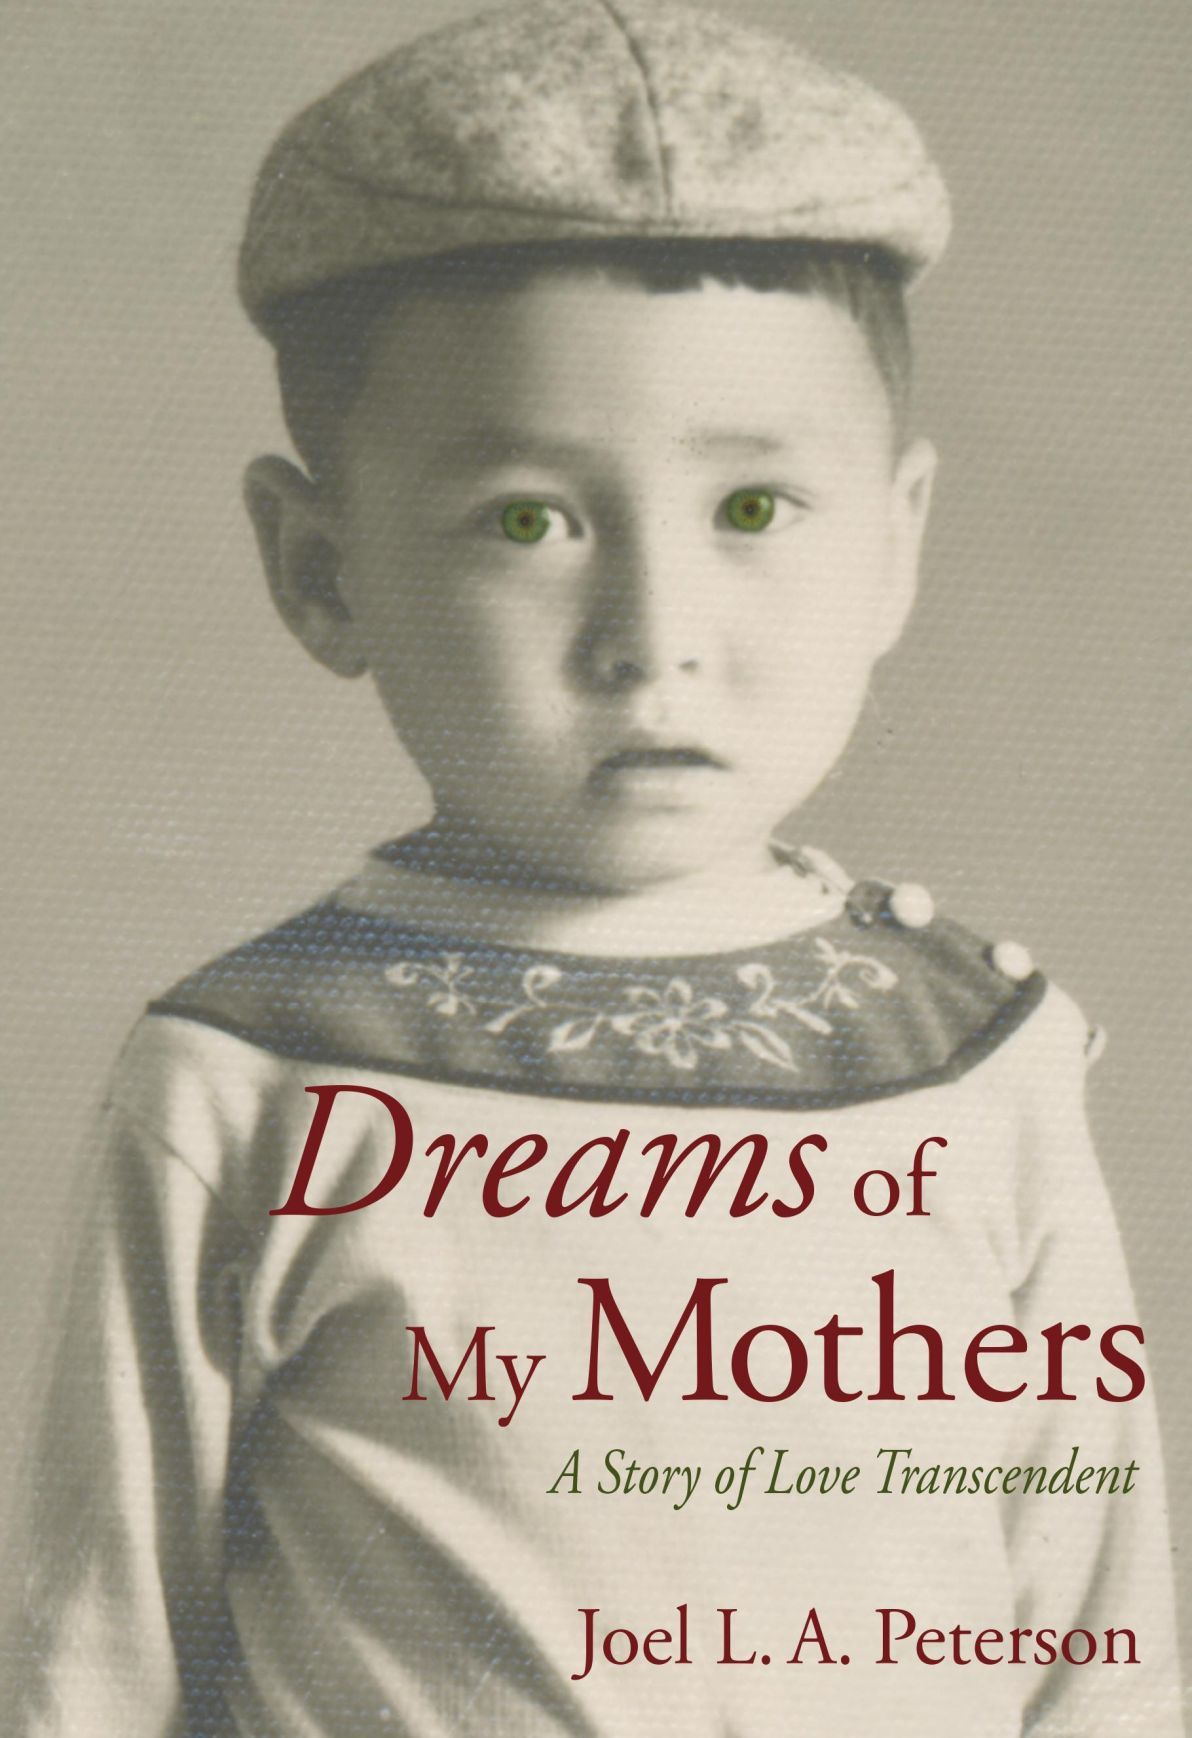 'Dreams of My Mothers'